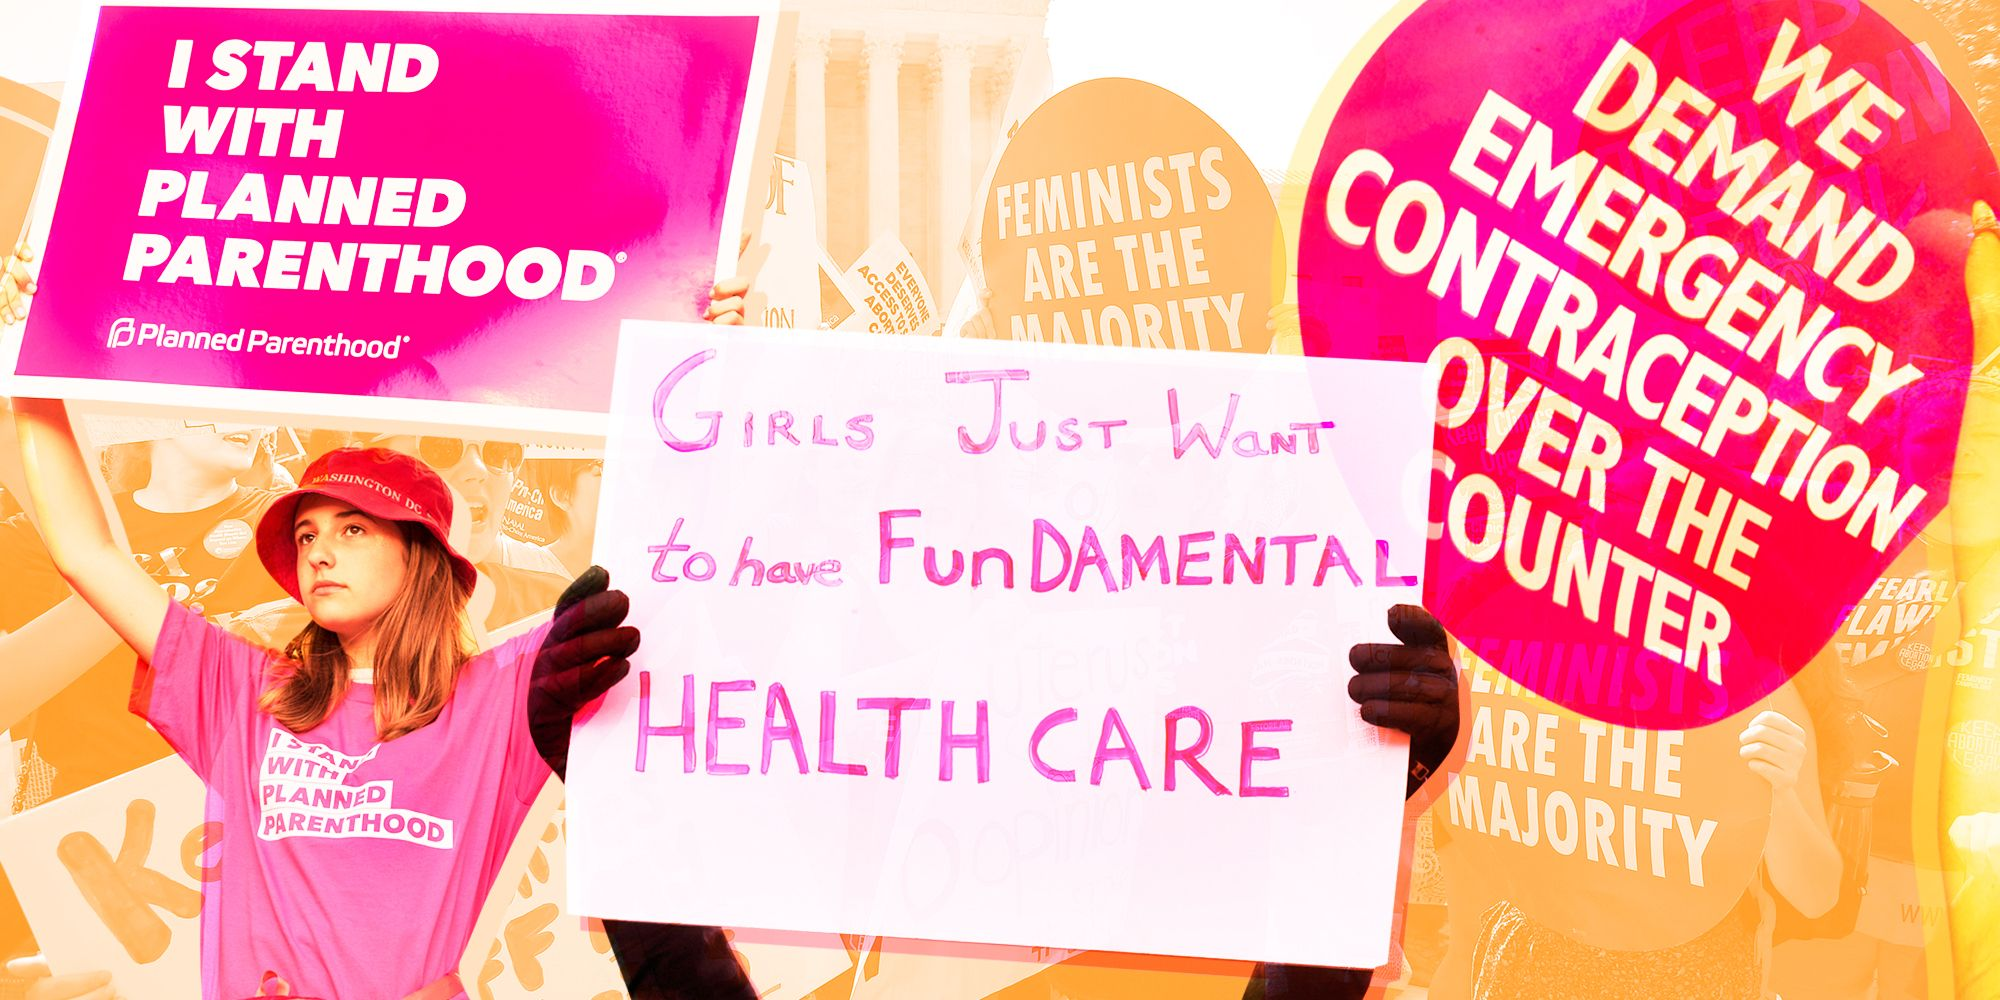 8 Horrible Things That Happen When You Defund Women's Healthcare